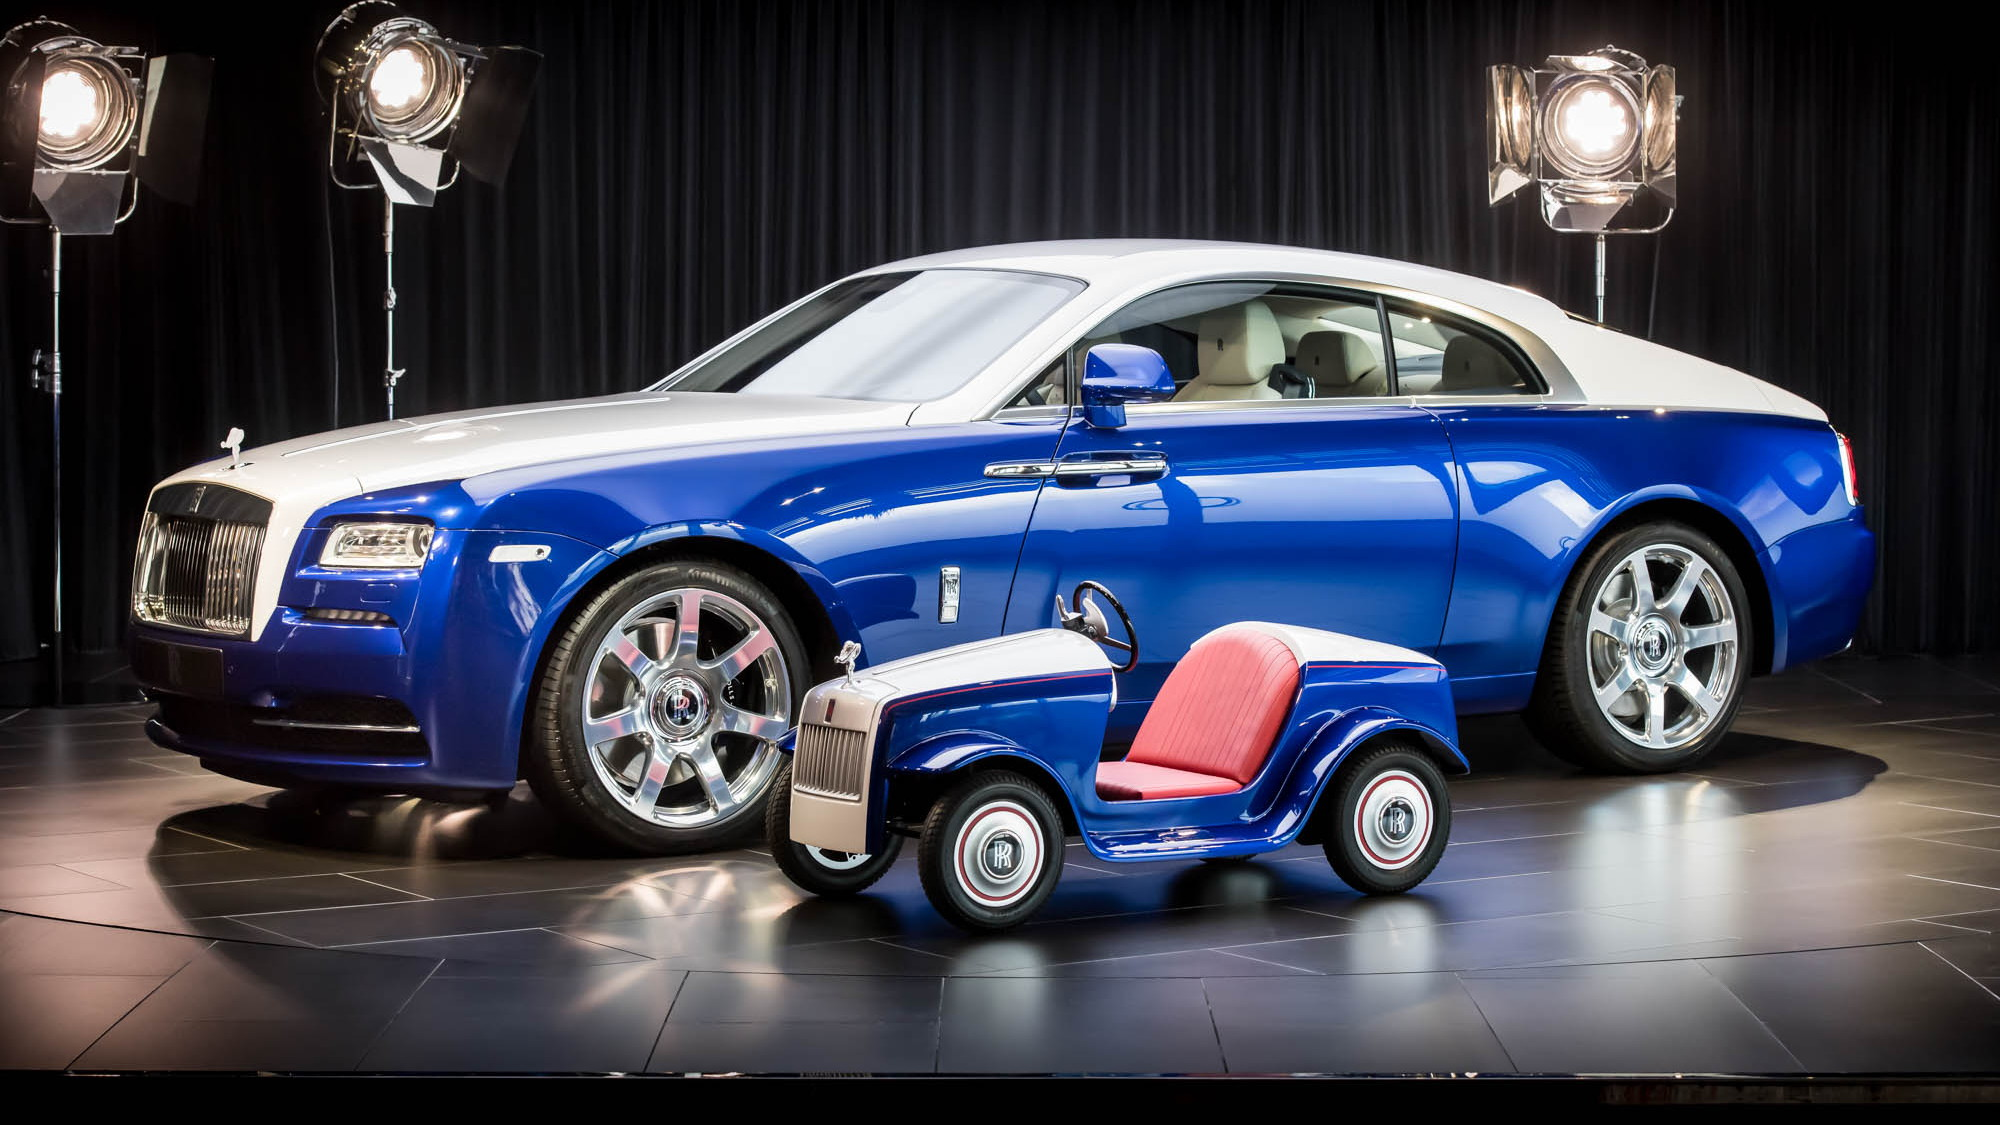 Rolls-Royce Motor Cars produces SRH hospital car for children